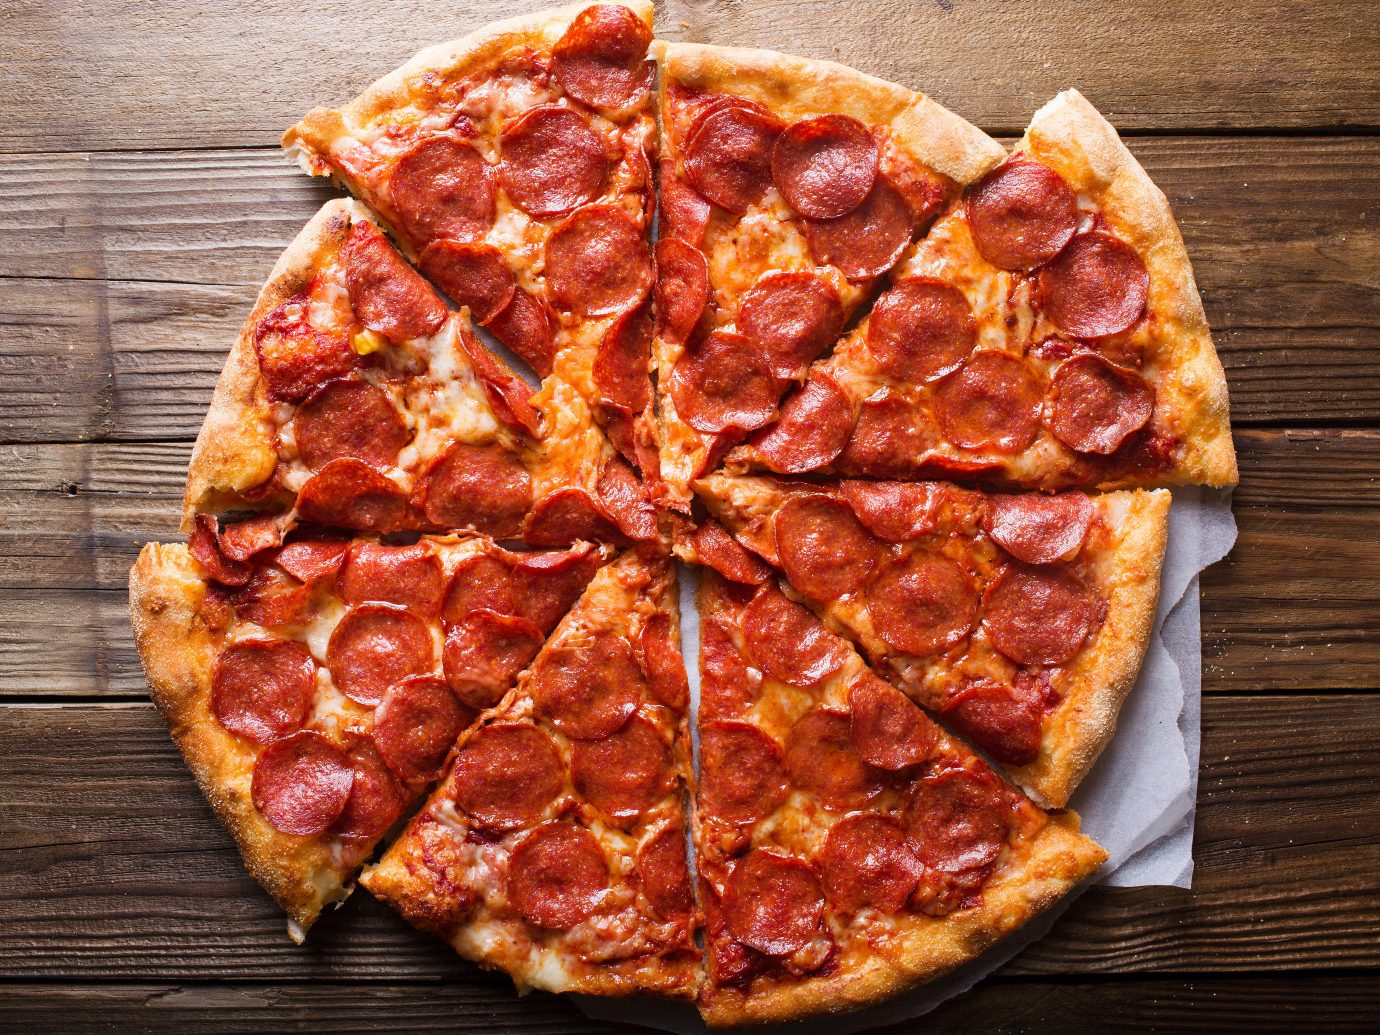 Trip Ideas pizza slice food wooden sitting dish pepperoni board cuisine piece sliced italian food meat produce salt cured meat cut european food baked goods dessert wood square fresh pan